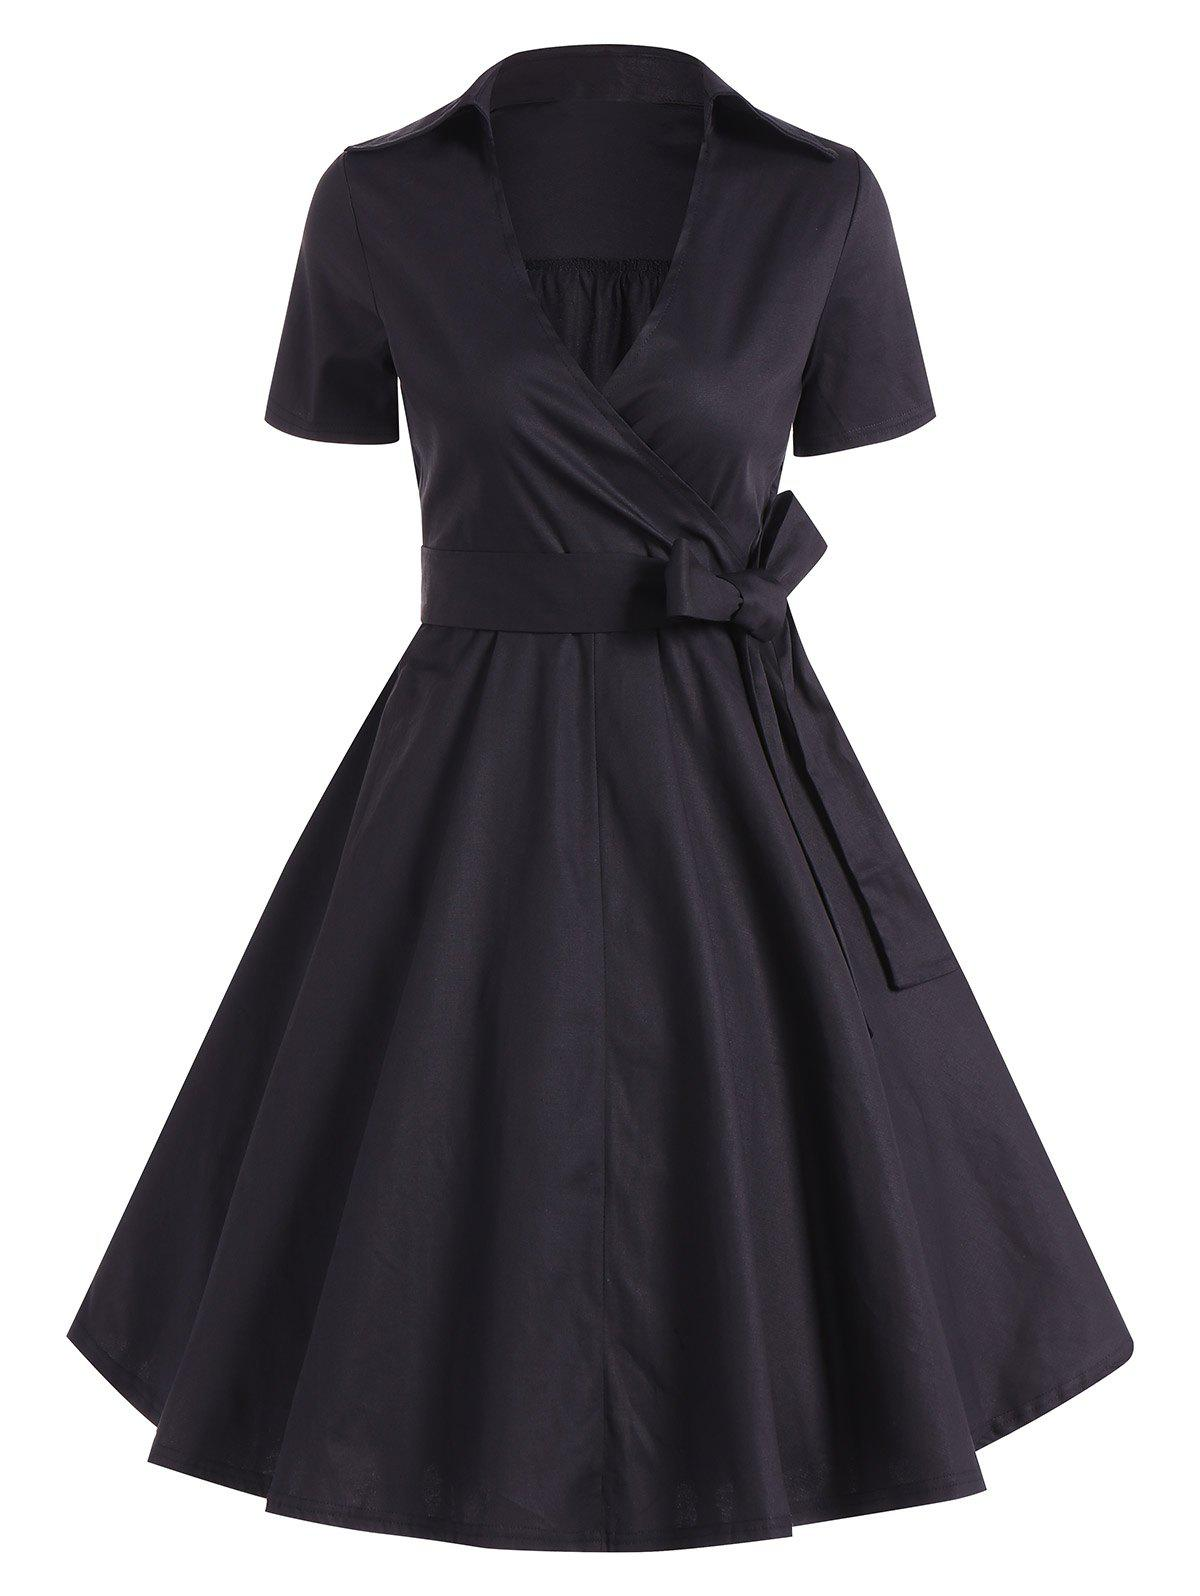 Retro Hepburn Style Bowknot Belted Wrap Dress - BLACK 2XL